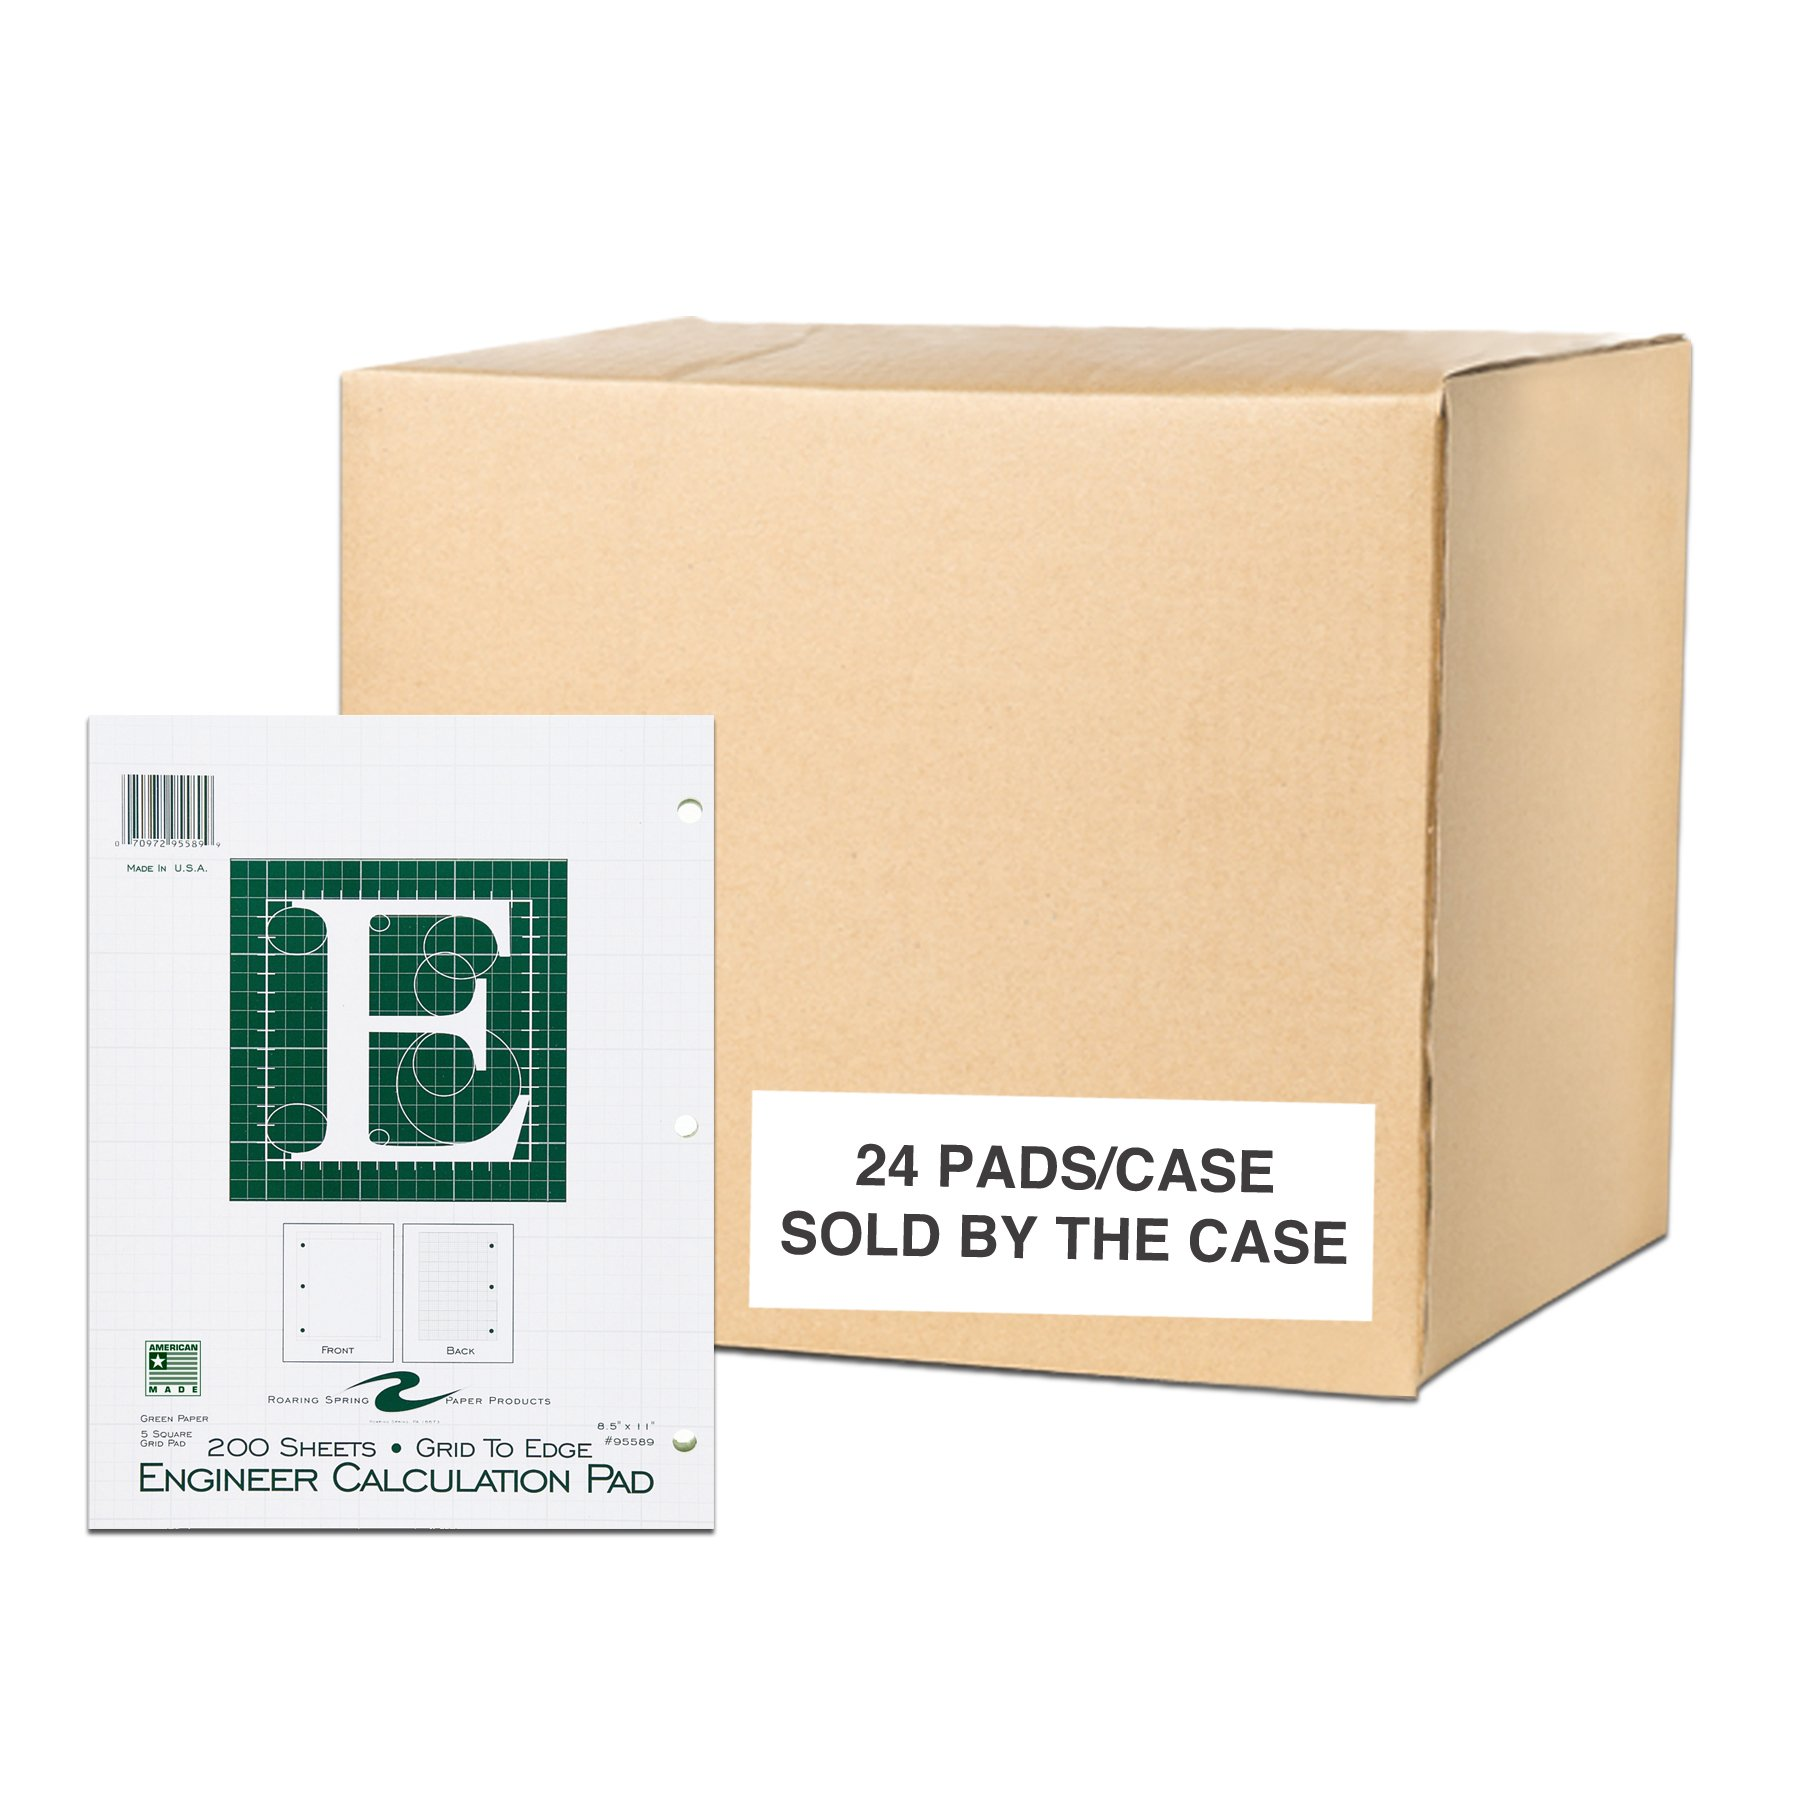 Case of 24 Engineer Pads, 8.5''x11'', 200 sheets of 16# Green tint Paper, 5x5 printed Grid to edge, 3-Hole Punched, Extra Heavy Backing by Roaring Spring Paper Products